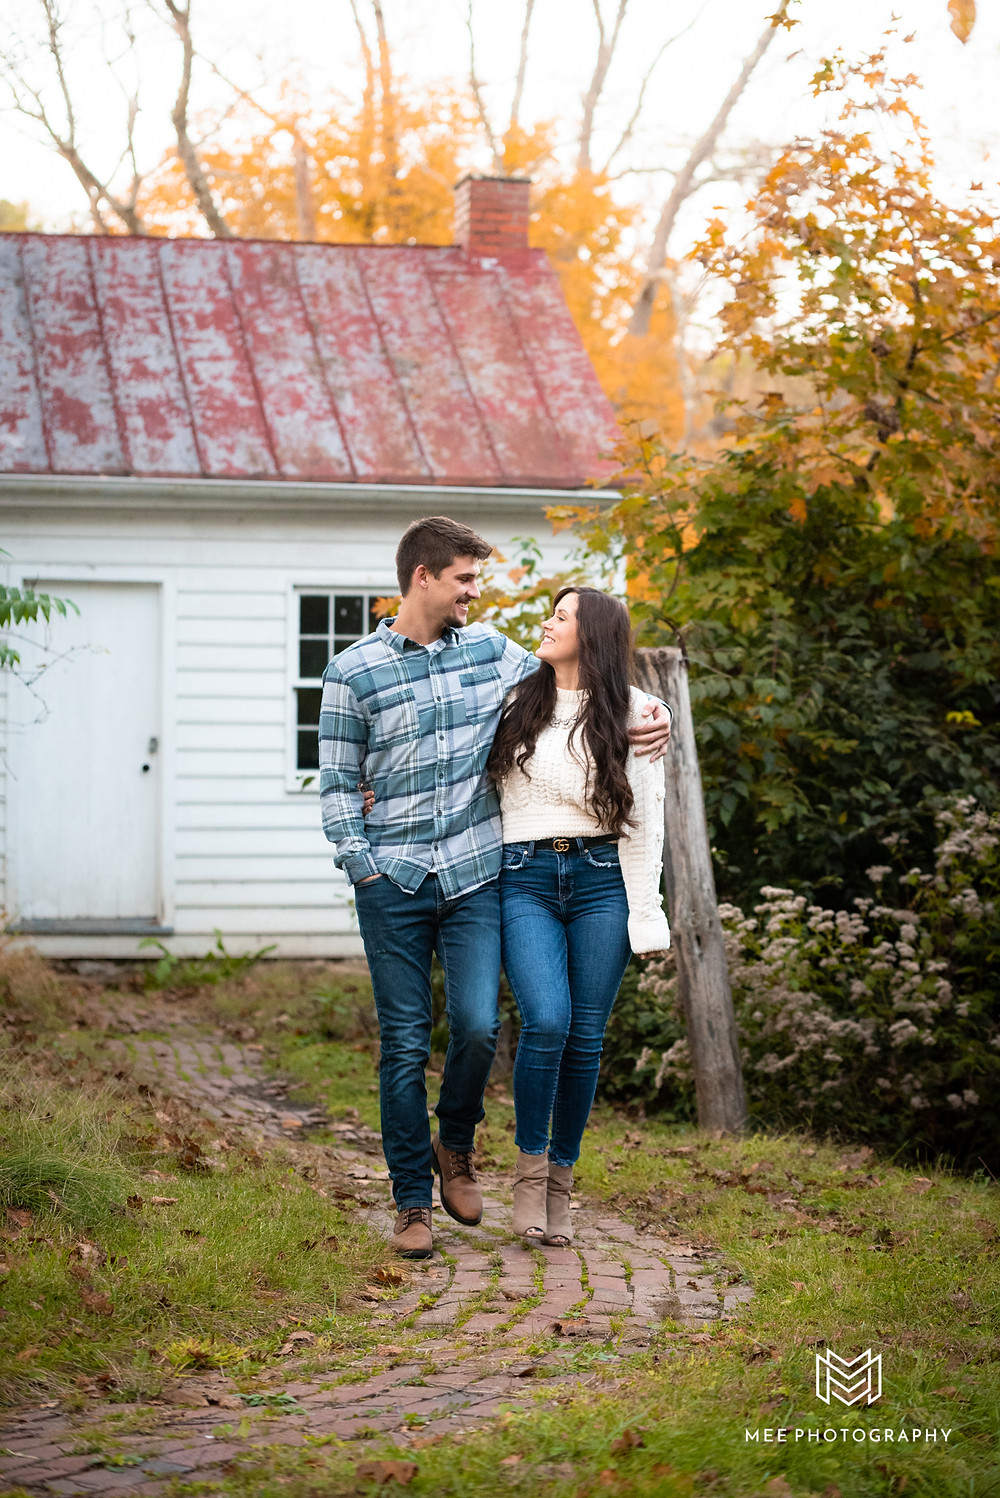 Engagement session at Bethany College in West Virginia